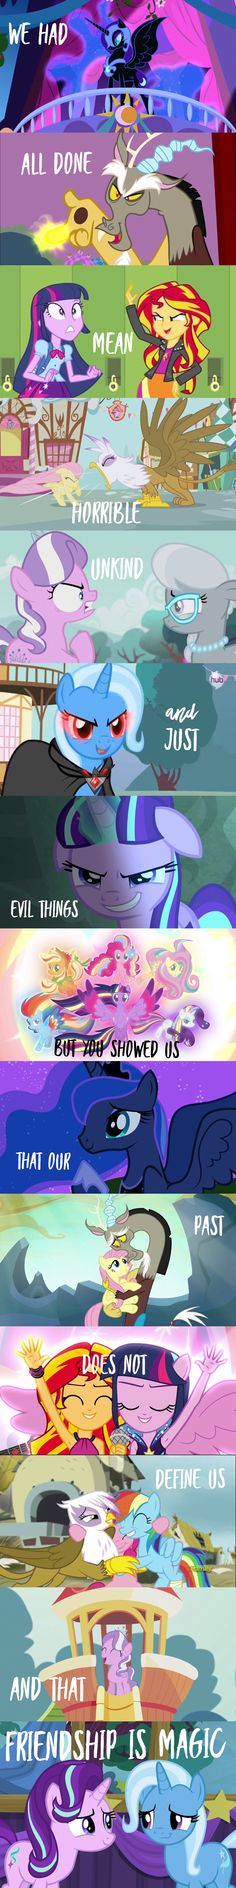 We all are able to have that second chance. Comment any quote or character suggestions! My Little Pony Twilight, My Little Pony Comic, My Little Pony Drawing, My Little Pony Pictures, Filles Equestria, My Little Pony Clothes, Mlp Rarity, Mlp Memes, My Little Pony Wallpaper